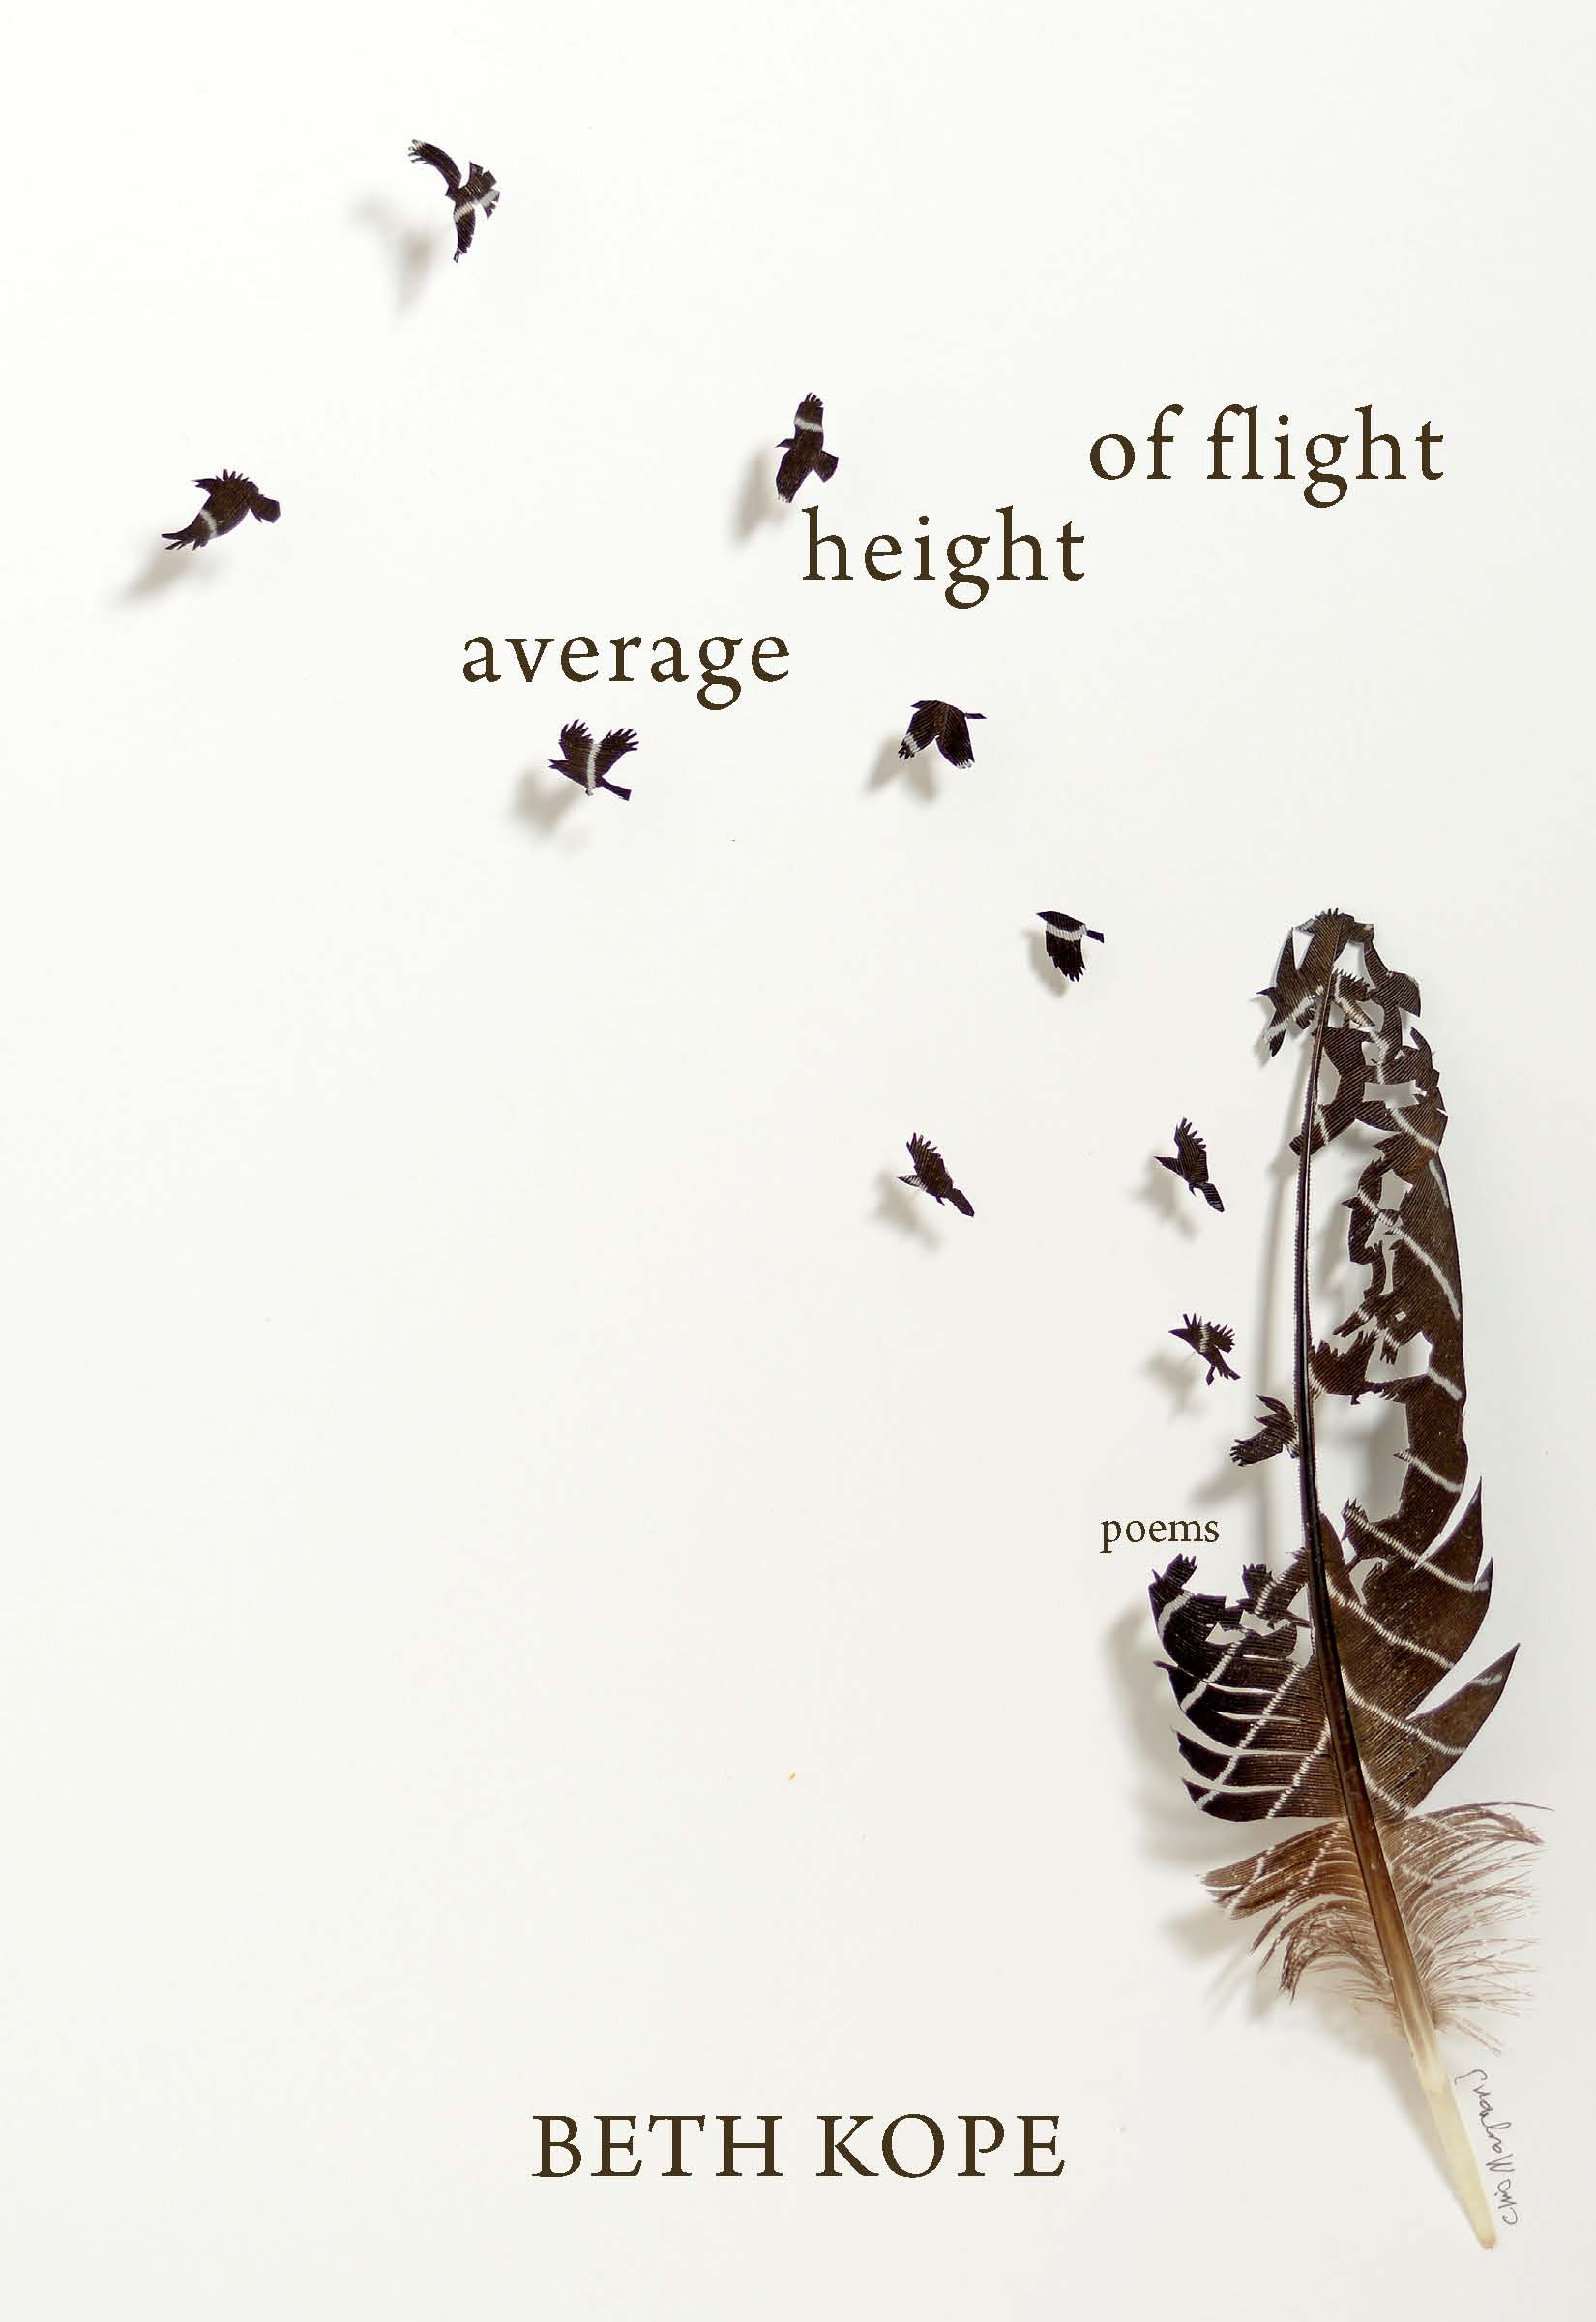 Average Height of Flight